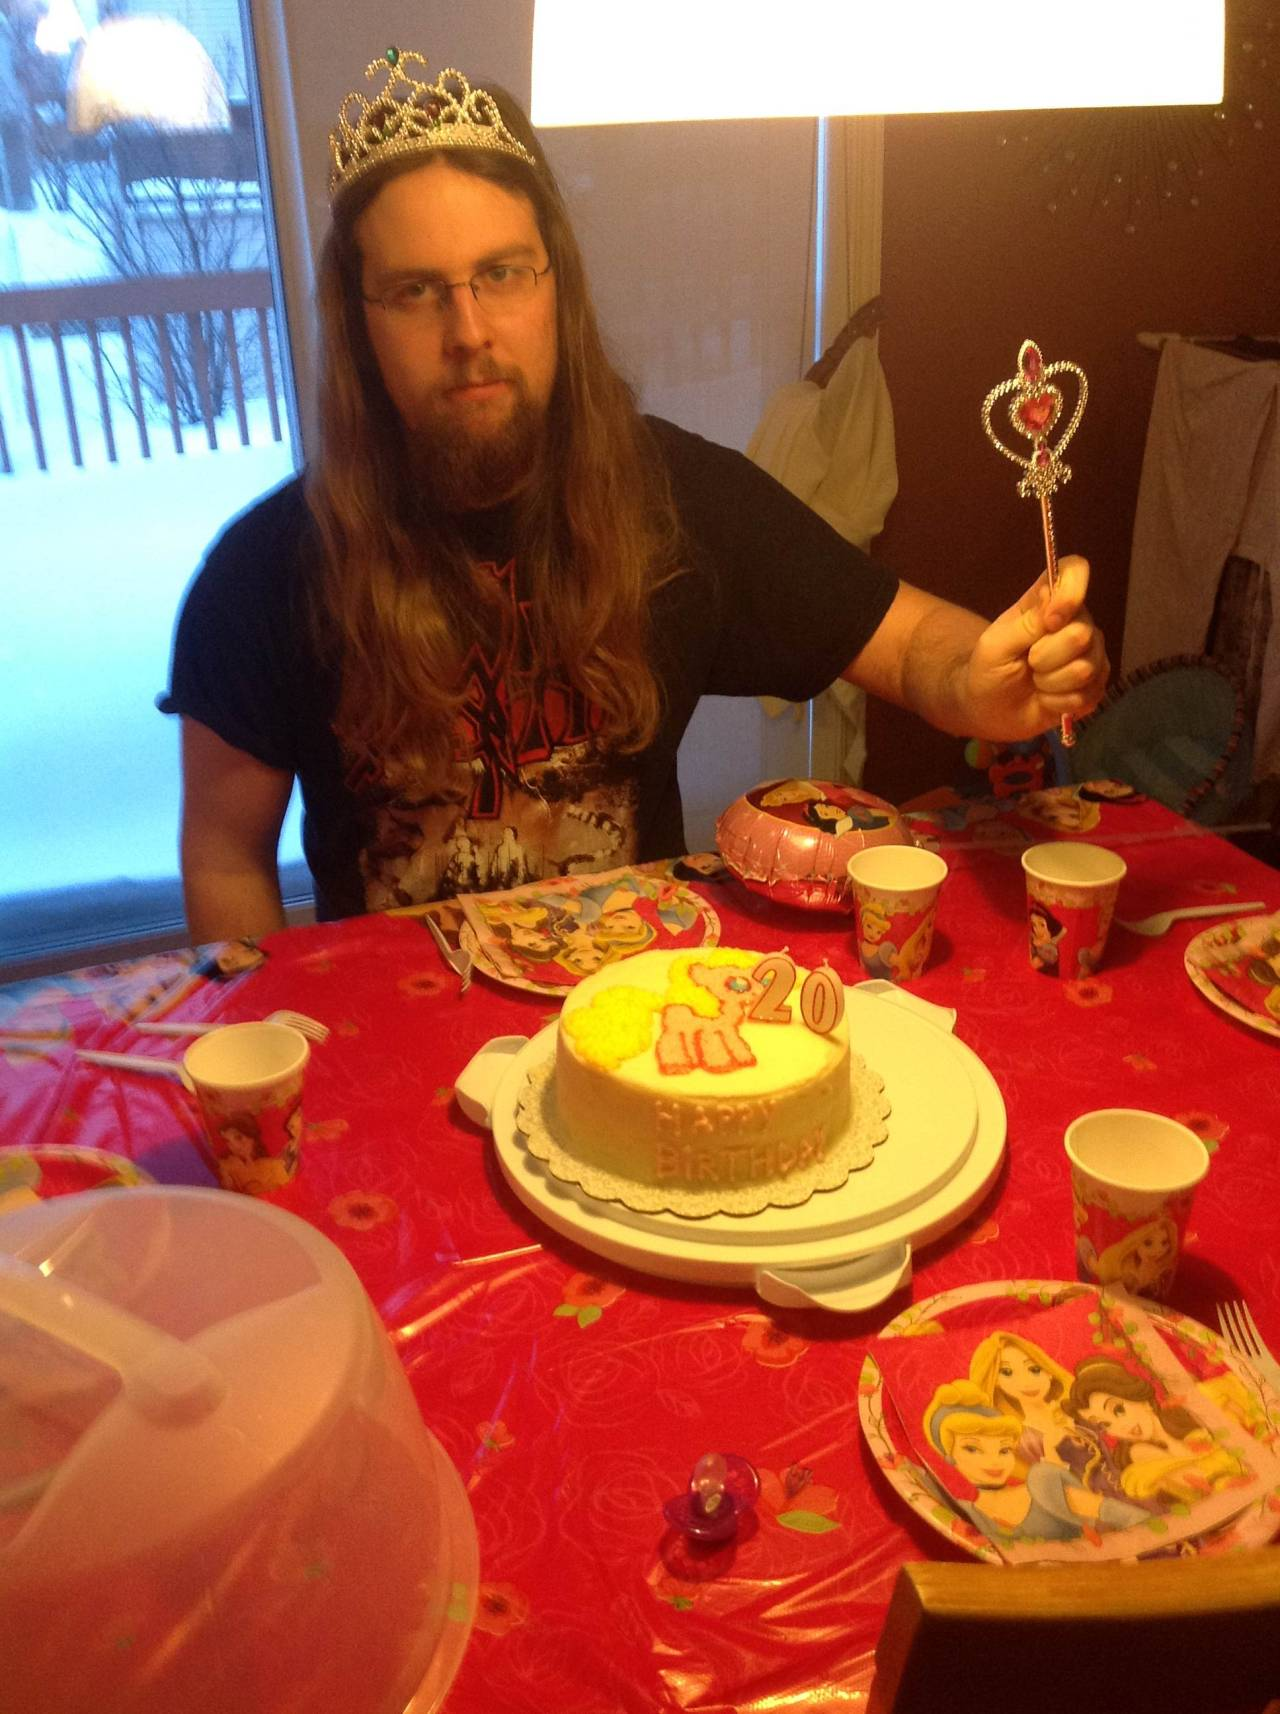 slavenewworld:  Yesterday was my birthday. My nephew picked out the party theme. He calls me princess. He also got me a my little pony doll.